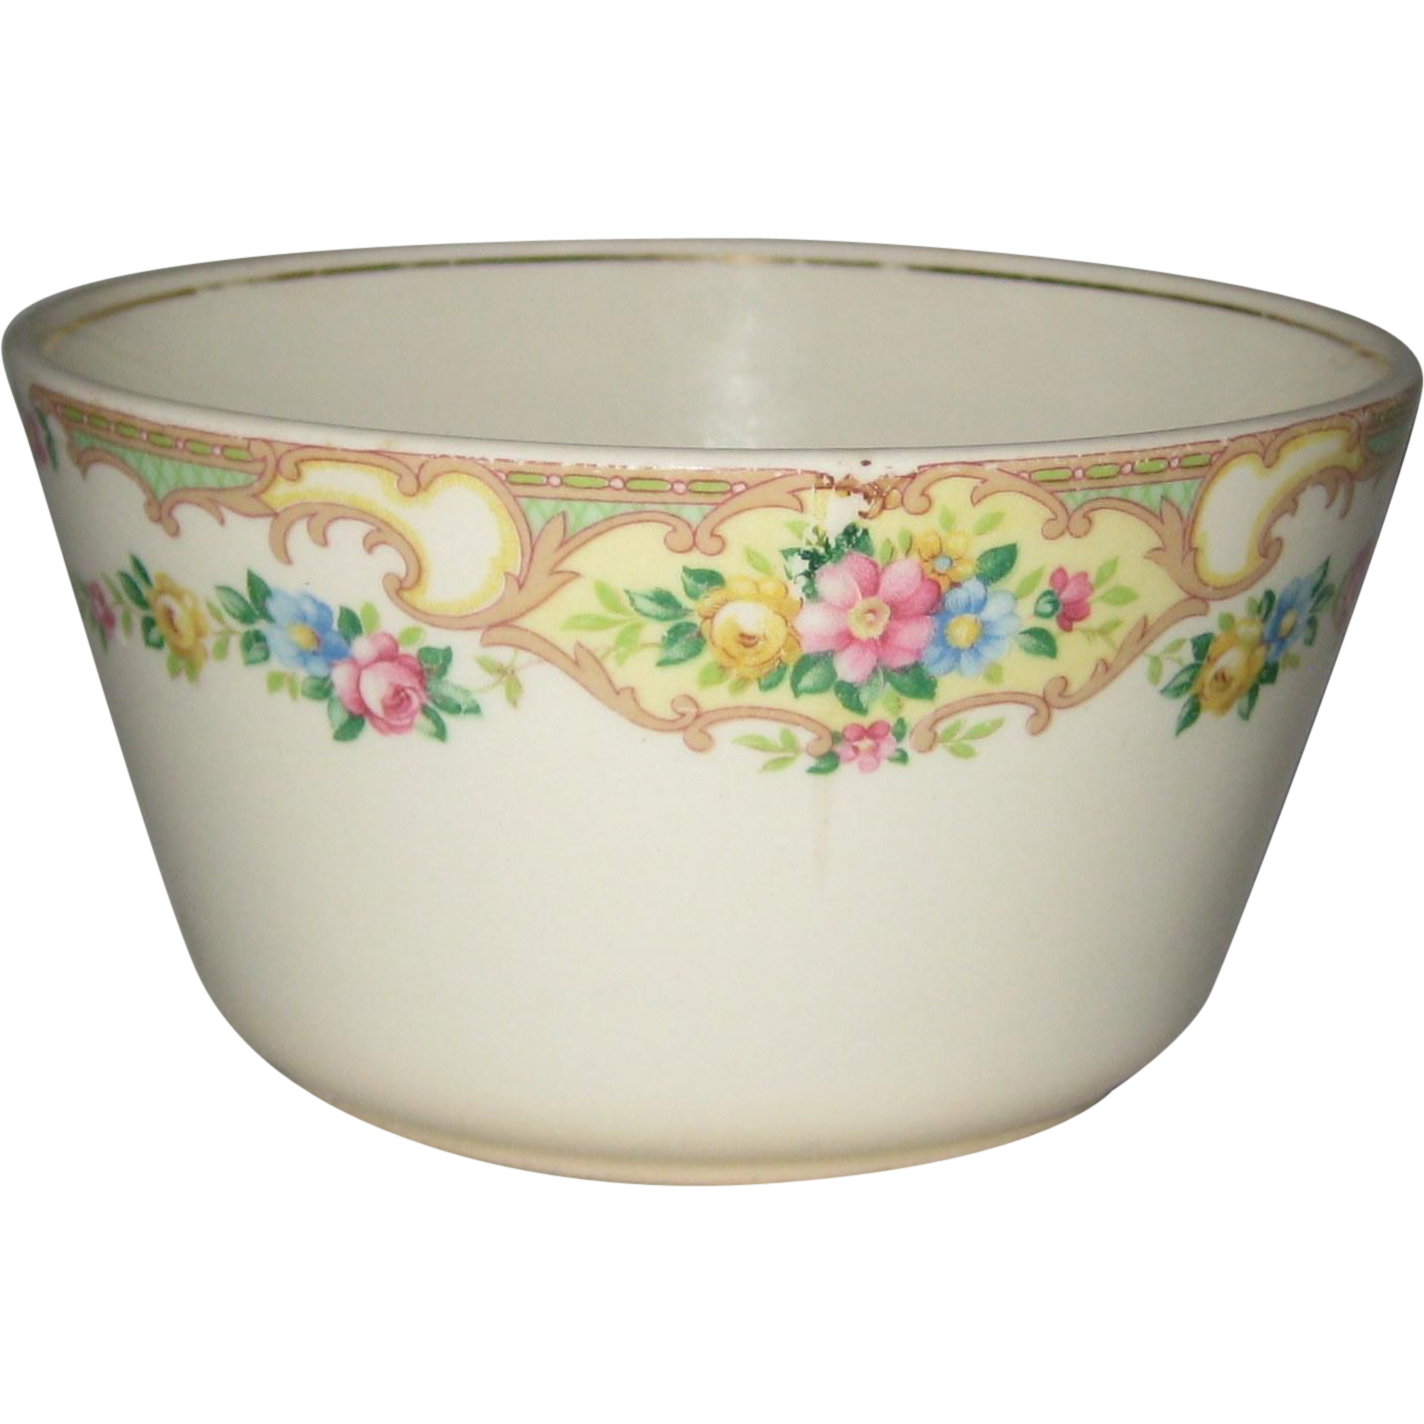 1930's Open Sugar Bowl with Floral Design